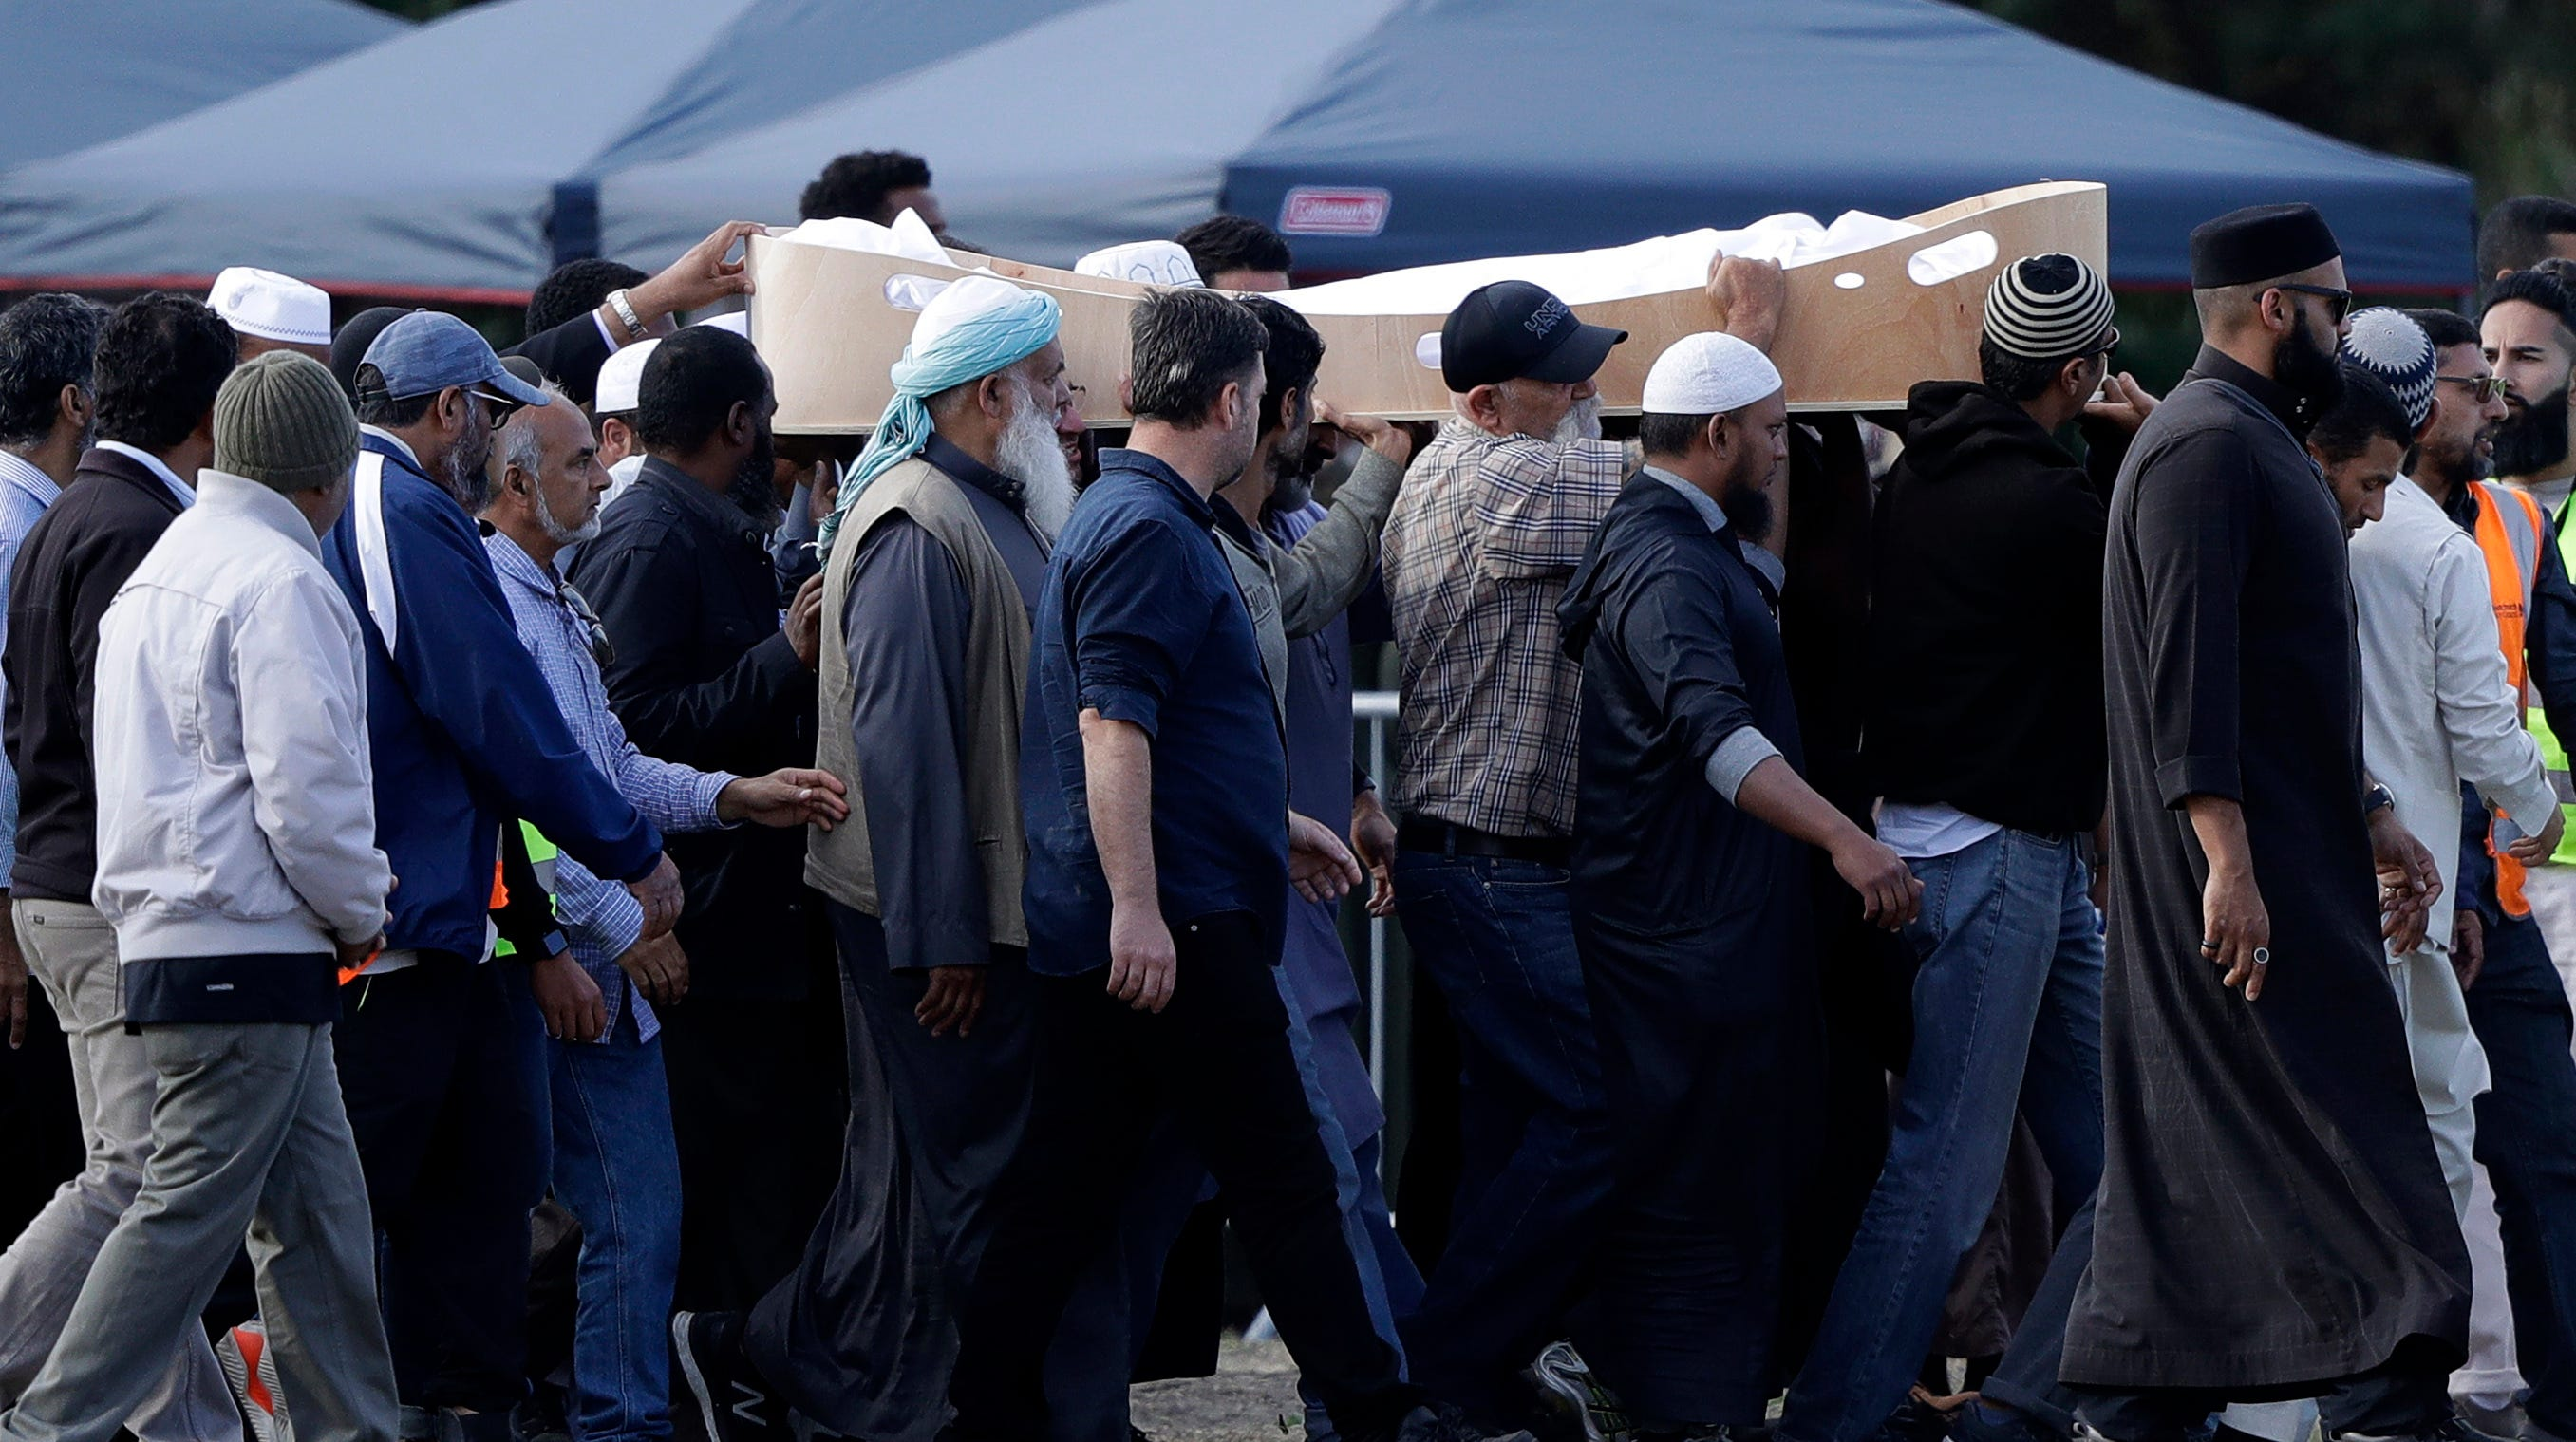 New Zealand Shooting Pinterest: New Zealand Holds First Funerals For Mosque Shooting Victims